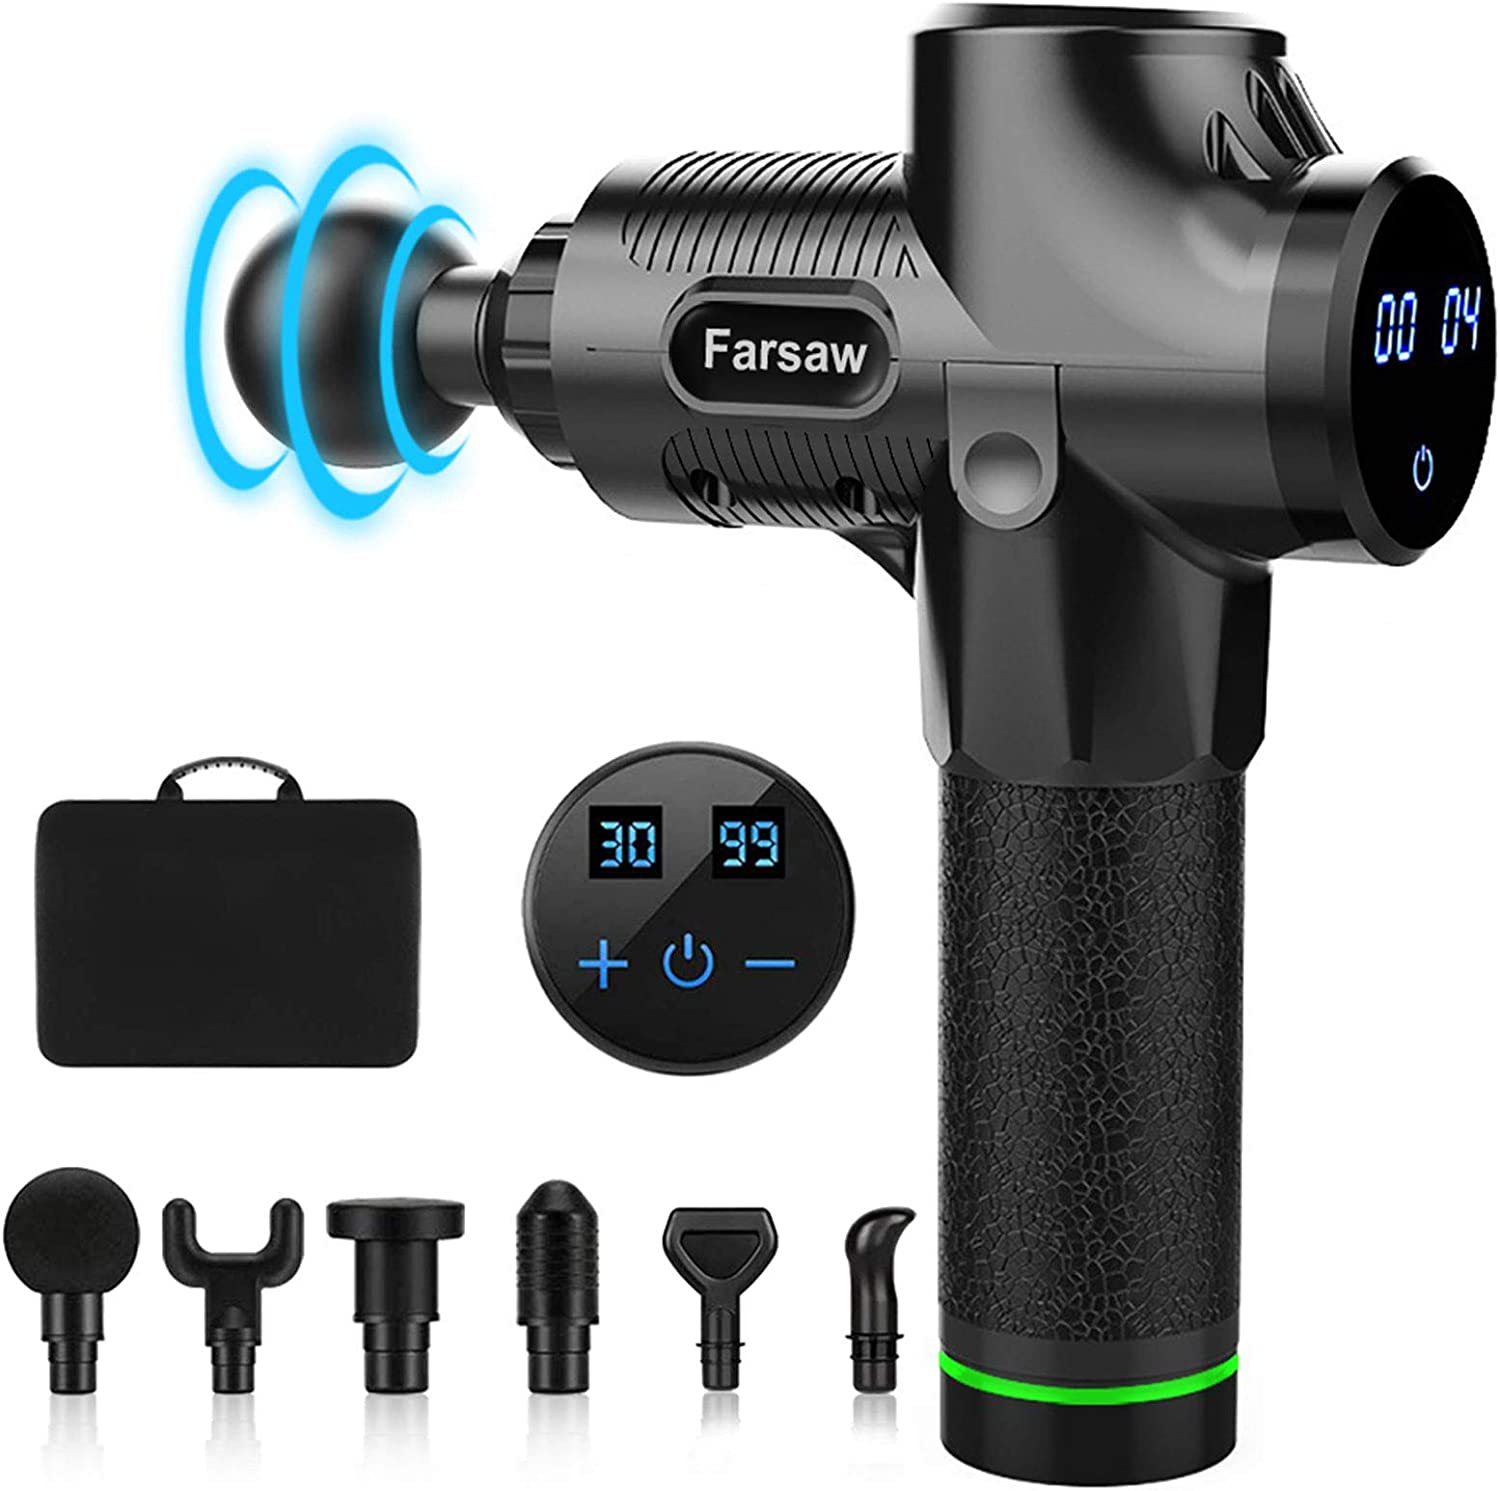 Massage Gun, Farsaw Deep Tissue Percussion Massager with 6 Heads, 30 Speeds Adjustable, 10 Hours Runtime, LED Display, Carrying Case Black